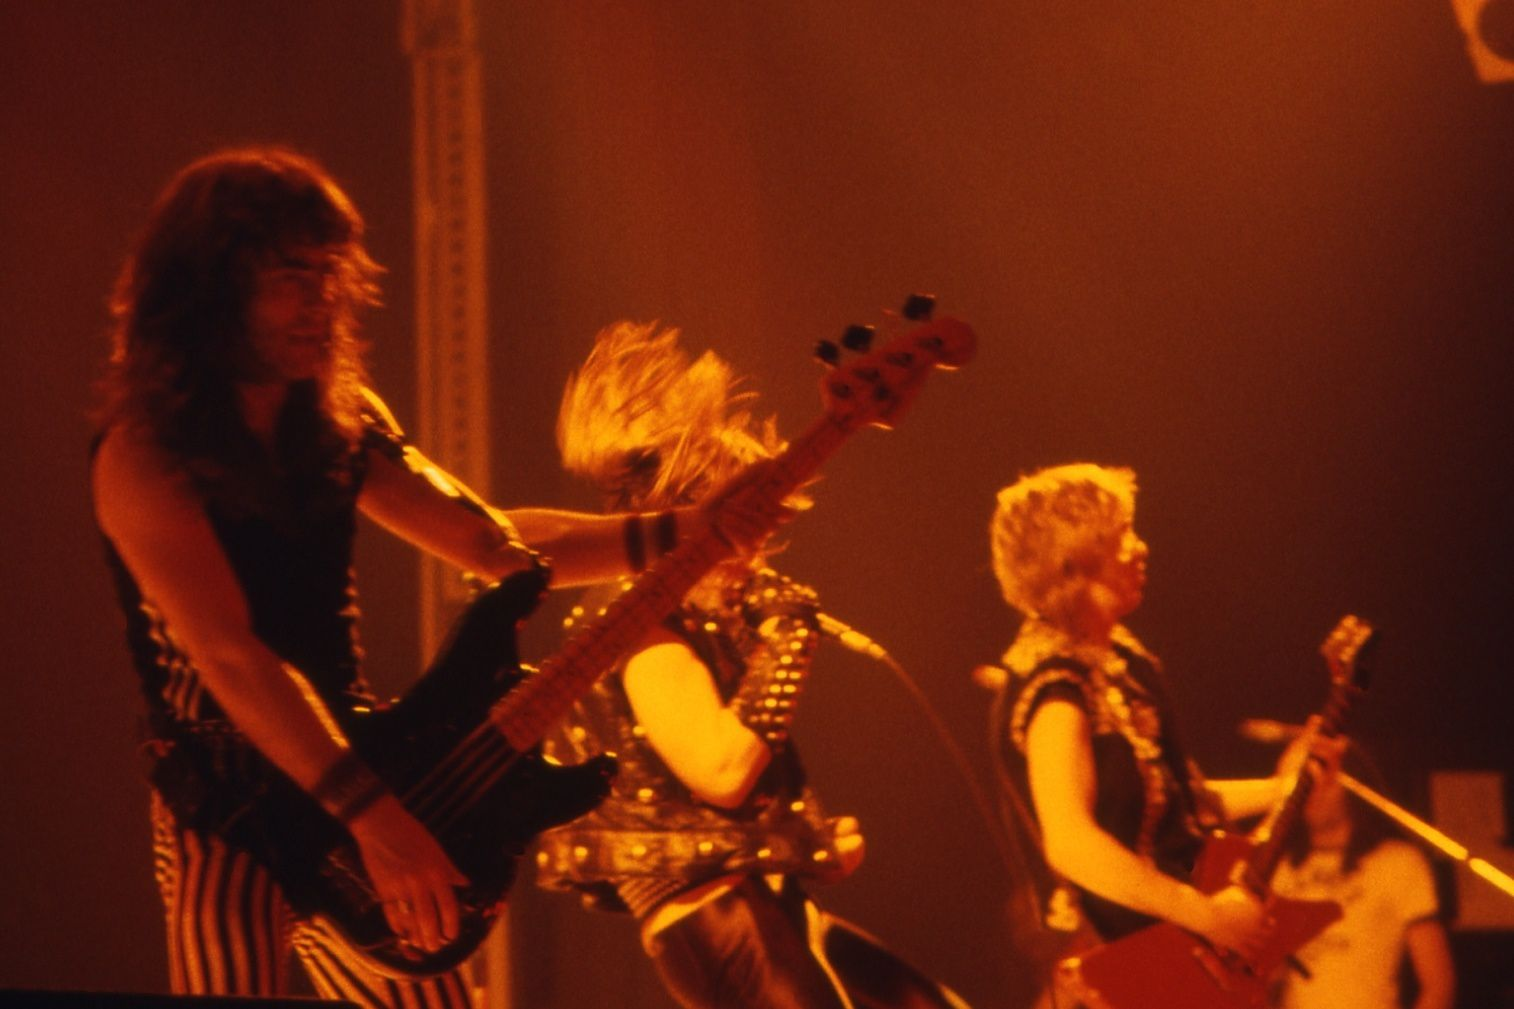 Steve Harris, Bruce Dickinson and Adrian Smith in 1982 (Iron Maiden)